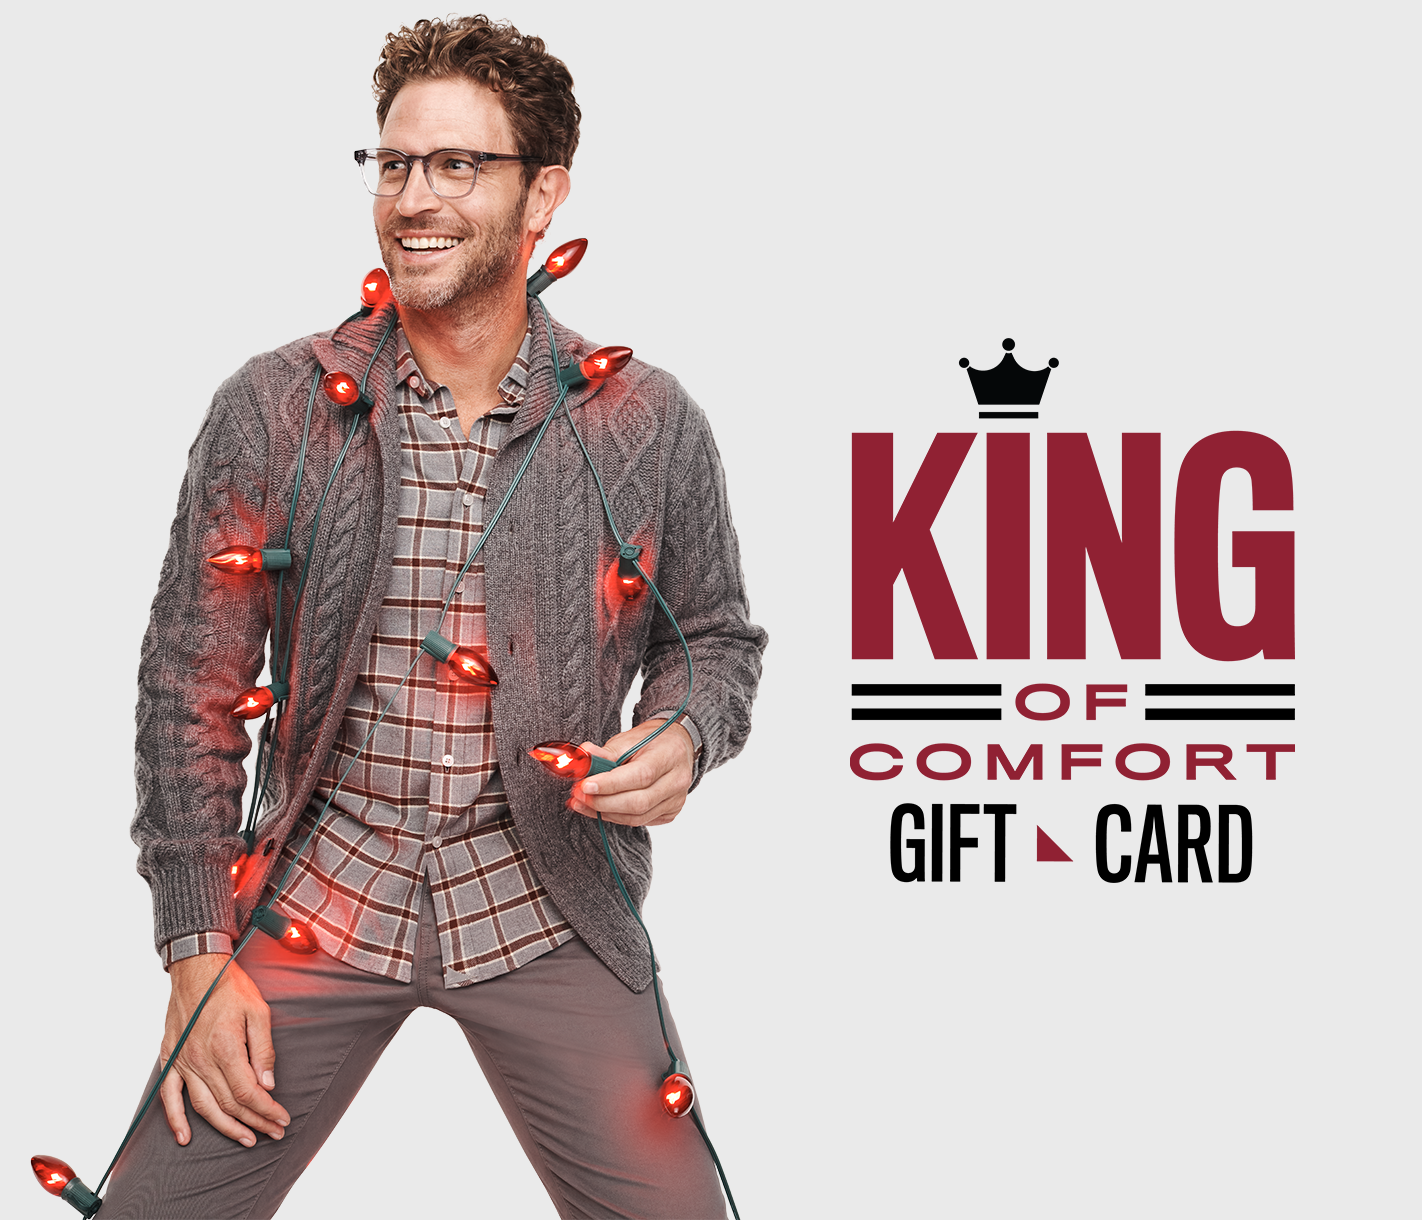 King of Comfort Gift Card